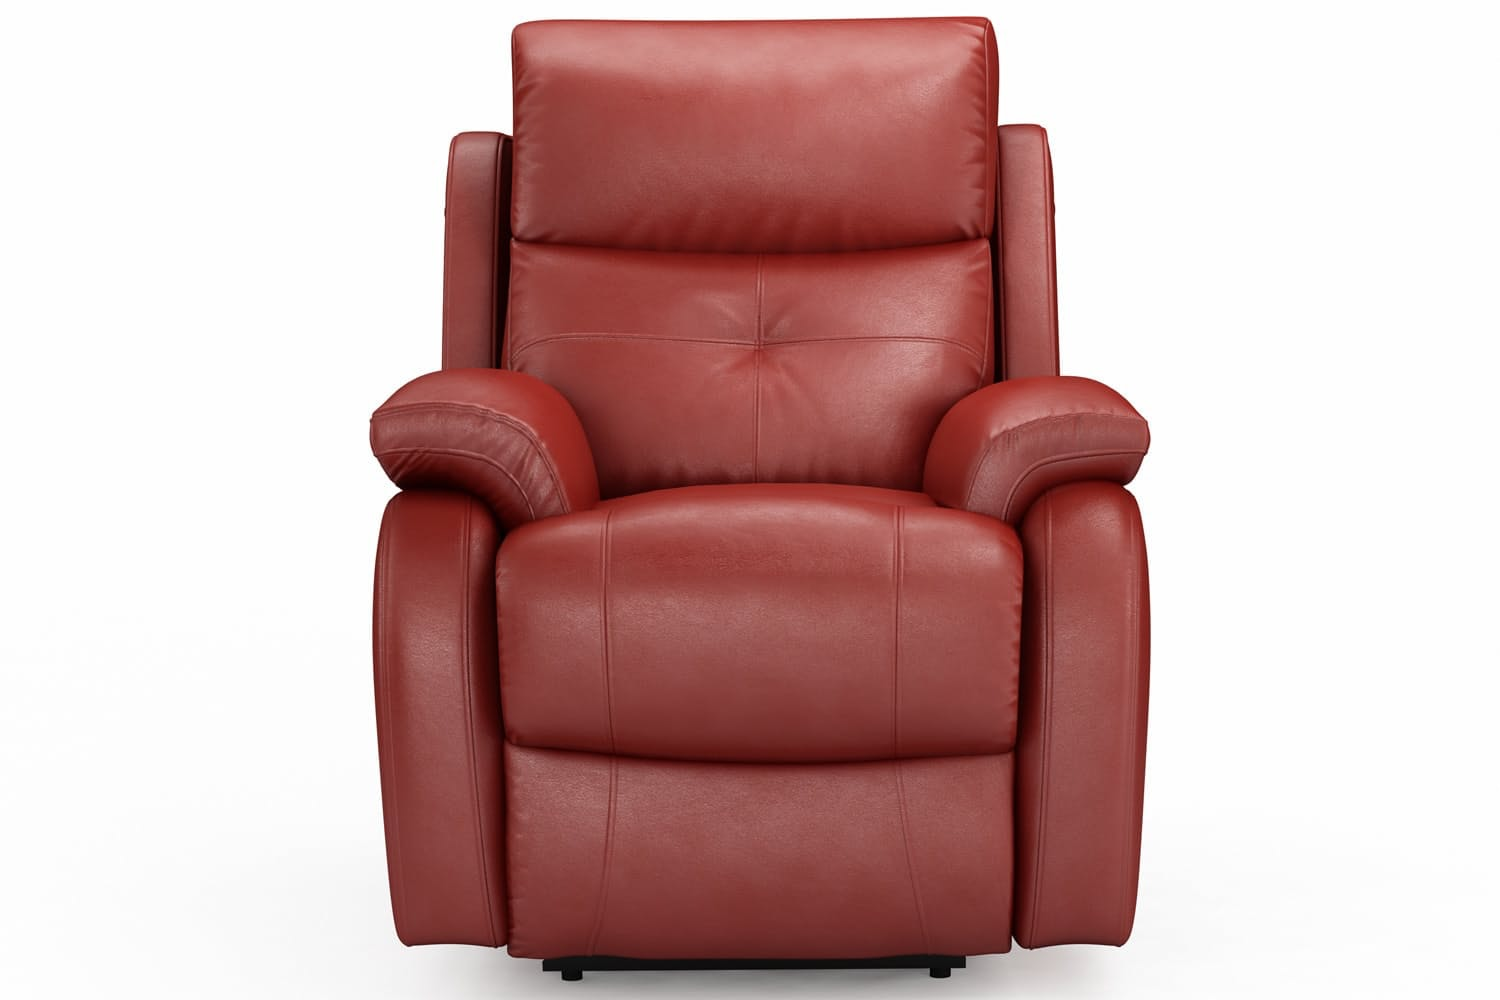 Mino Leather Recliner Armchair